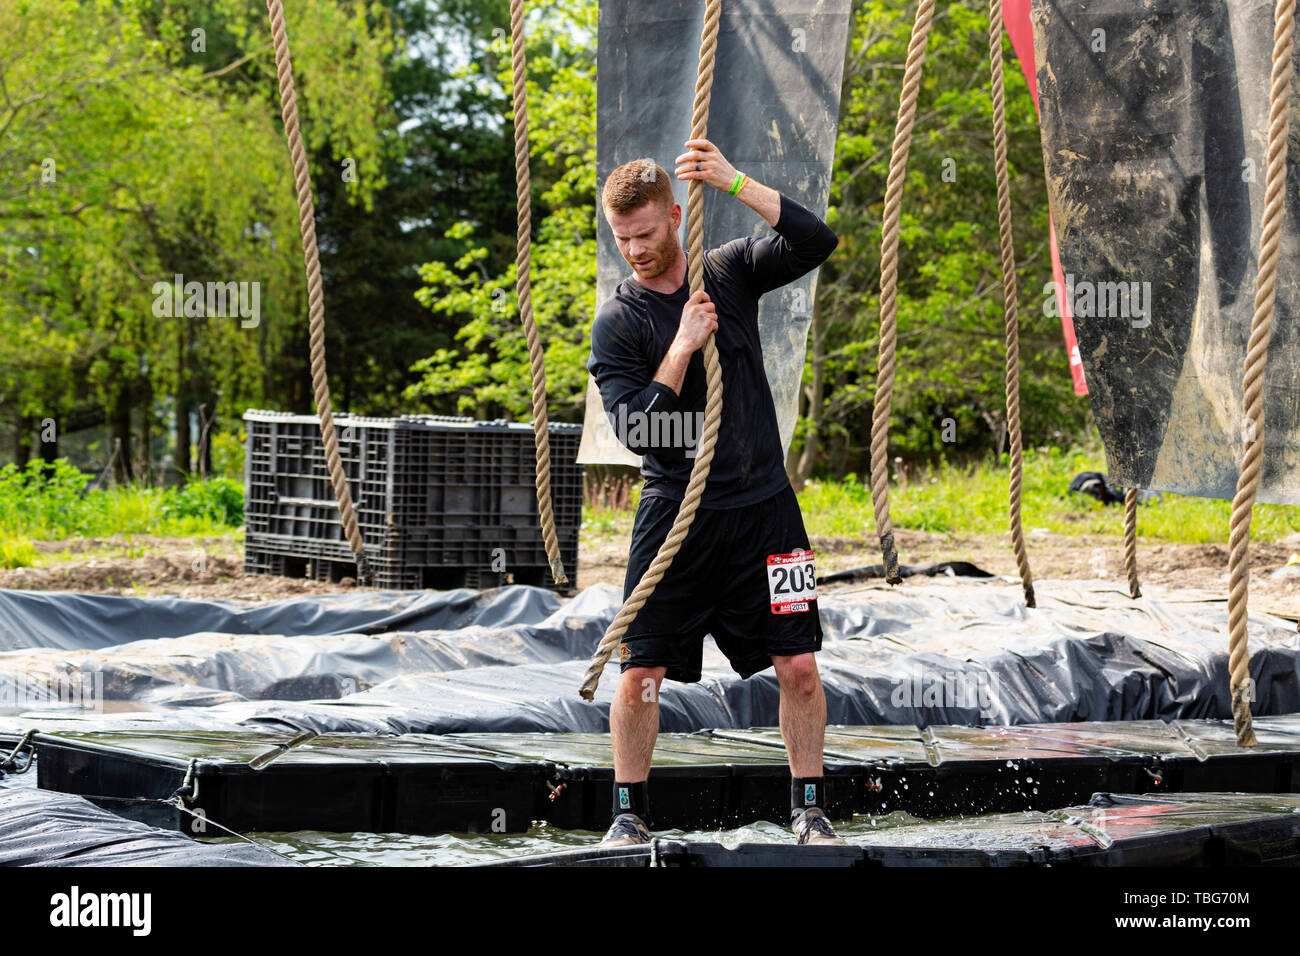 Rugged Maniac Obstacle Race Kitchener Ontario Canada June 01 2019 - Stock Image